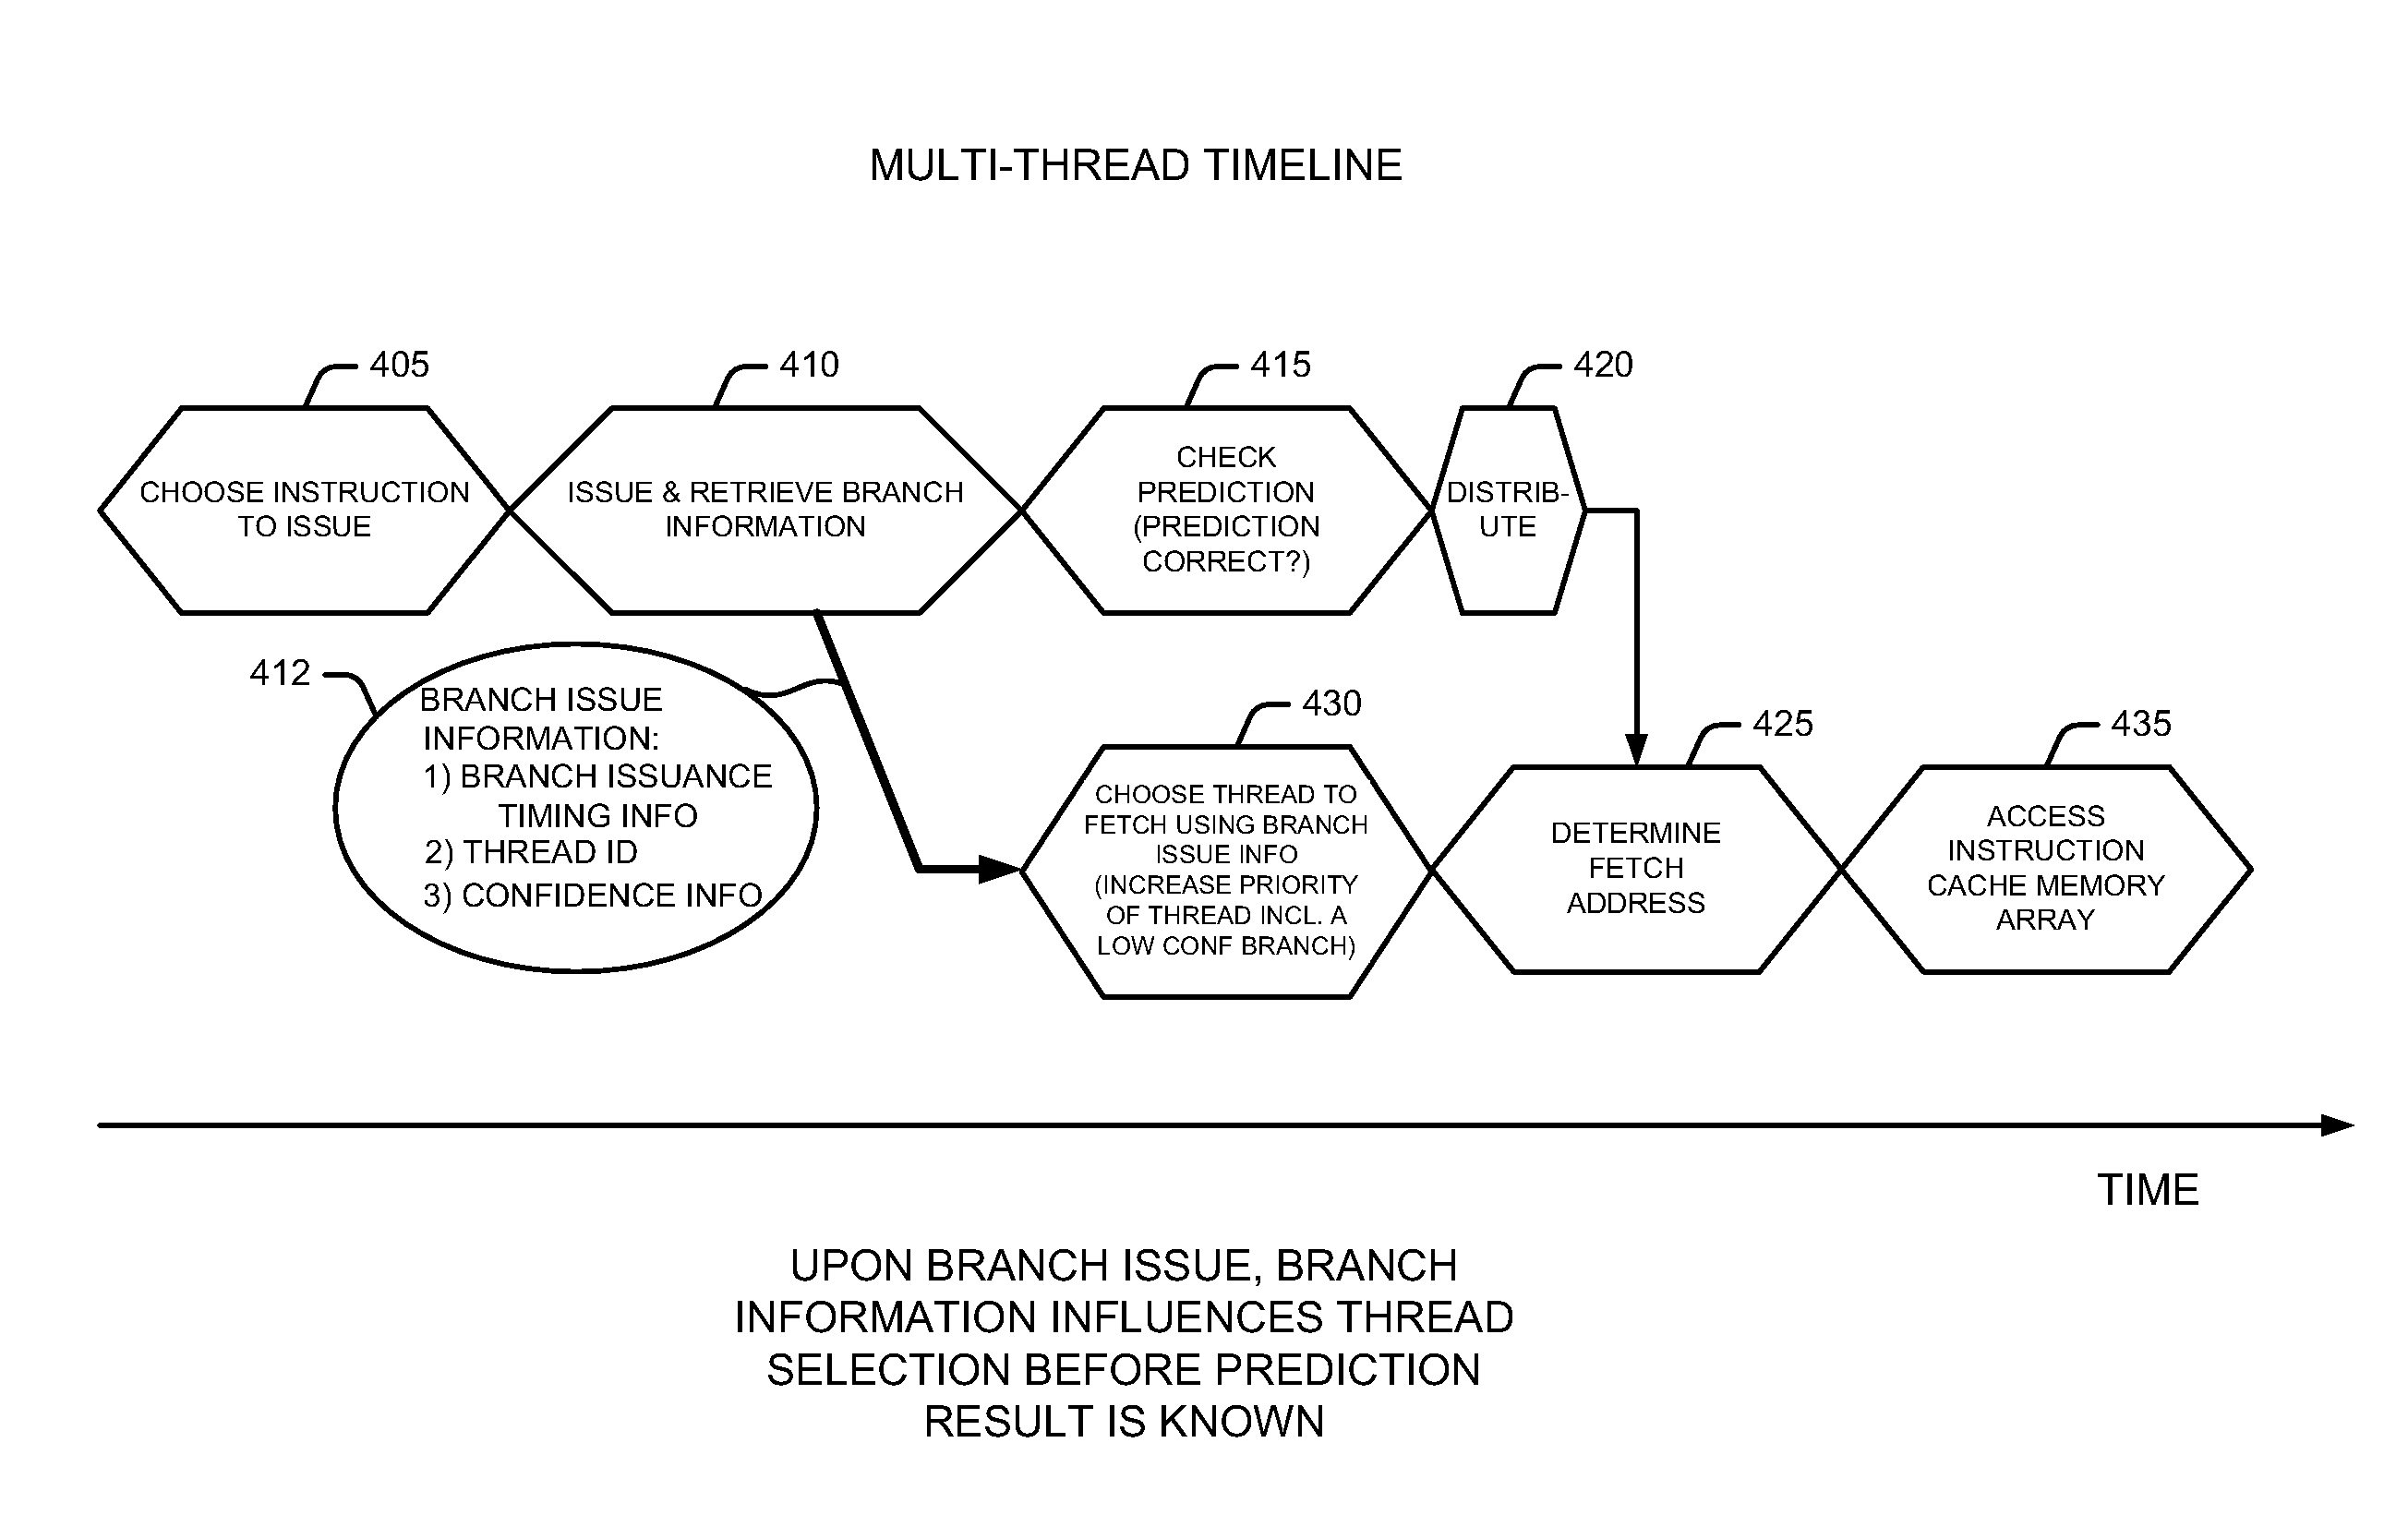 US8255669B2 - Method and apparatus for thread priority control in a